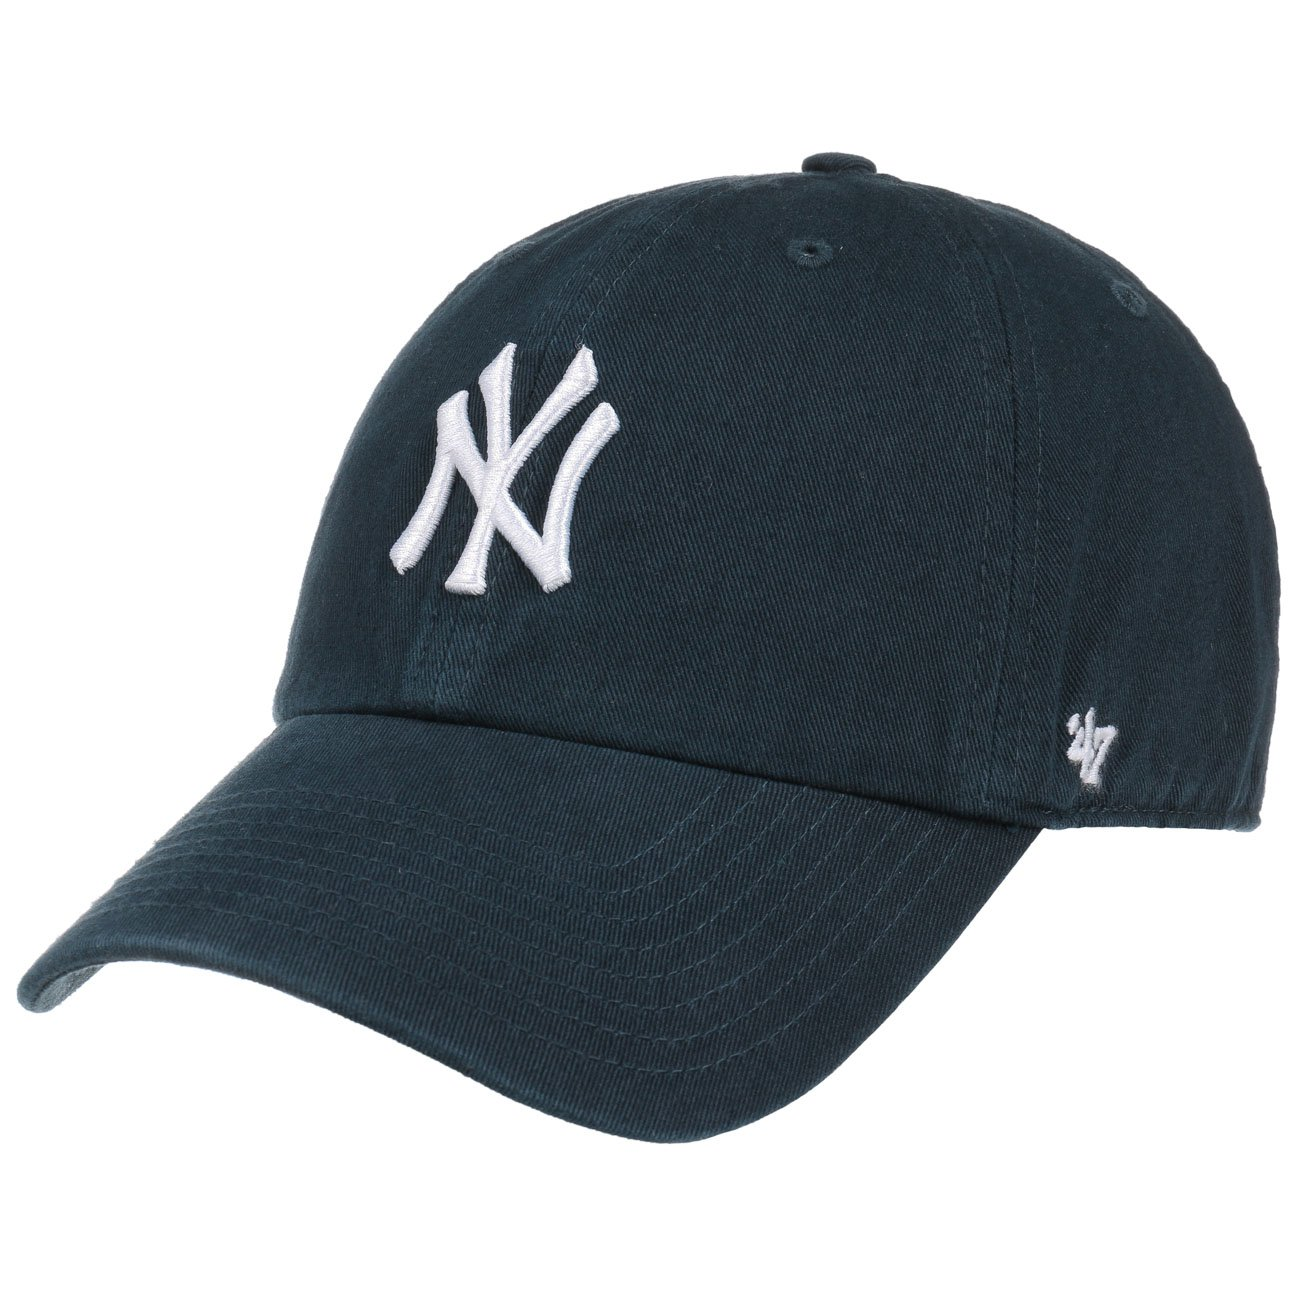 '47 Clean up New York Yankees Mens Cap Black One Size '47 Brand B-RGW17GWS-BKD